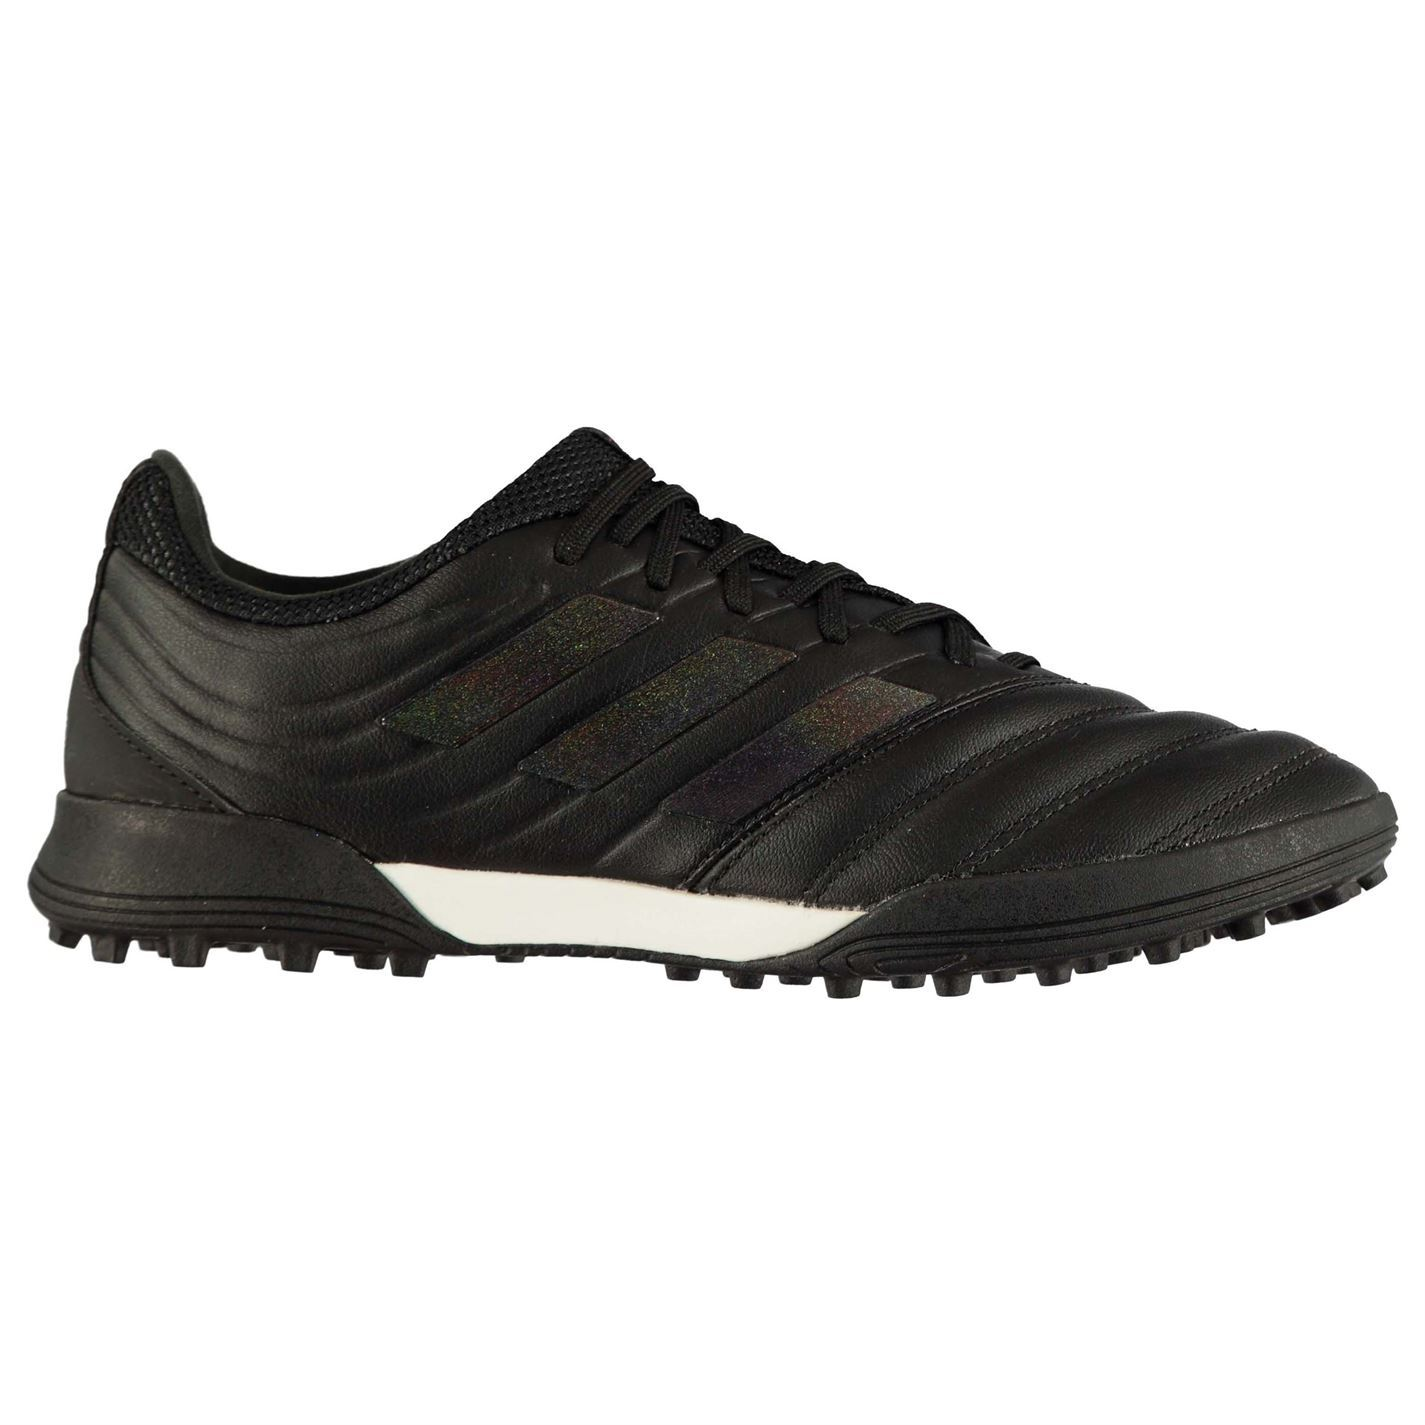 Adidas-Copa-19-3-Astro-Turf-Football-Chaussures-Homme-Football-Entrainement-Baskets miniature 7